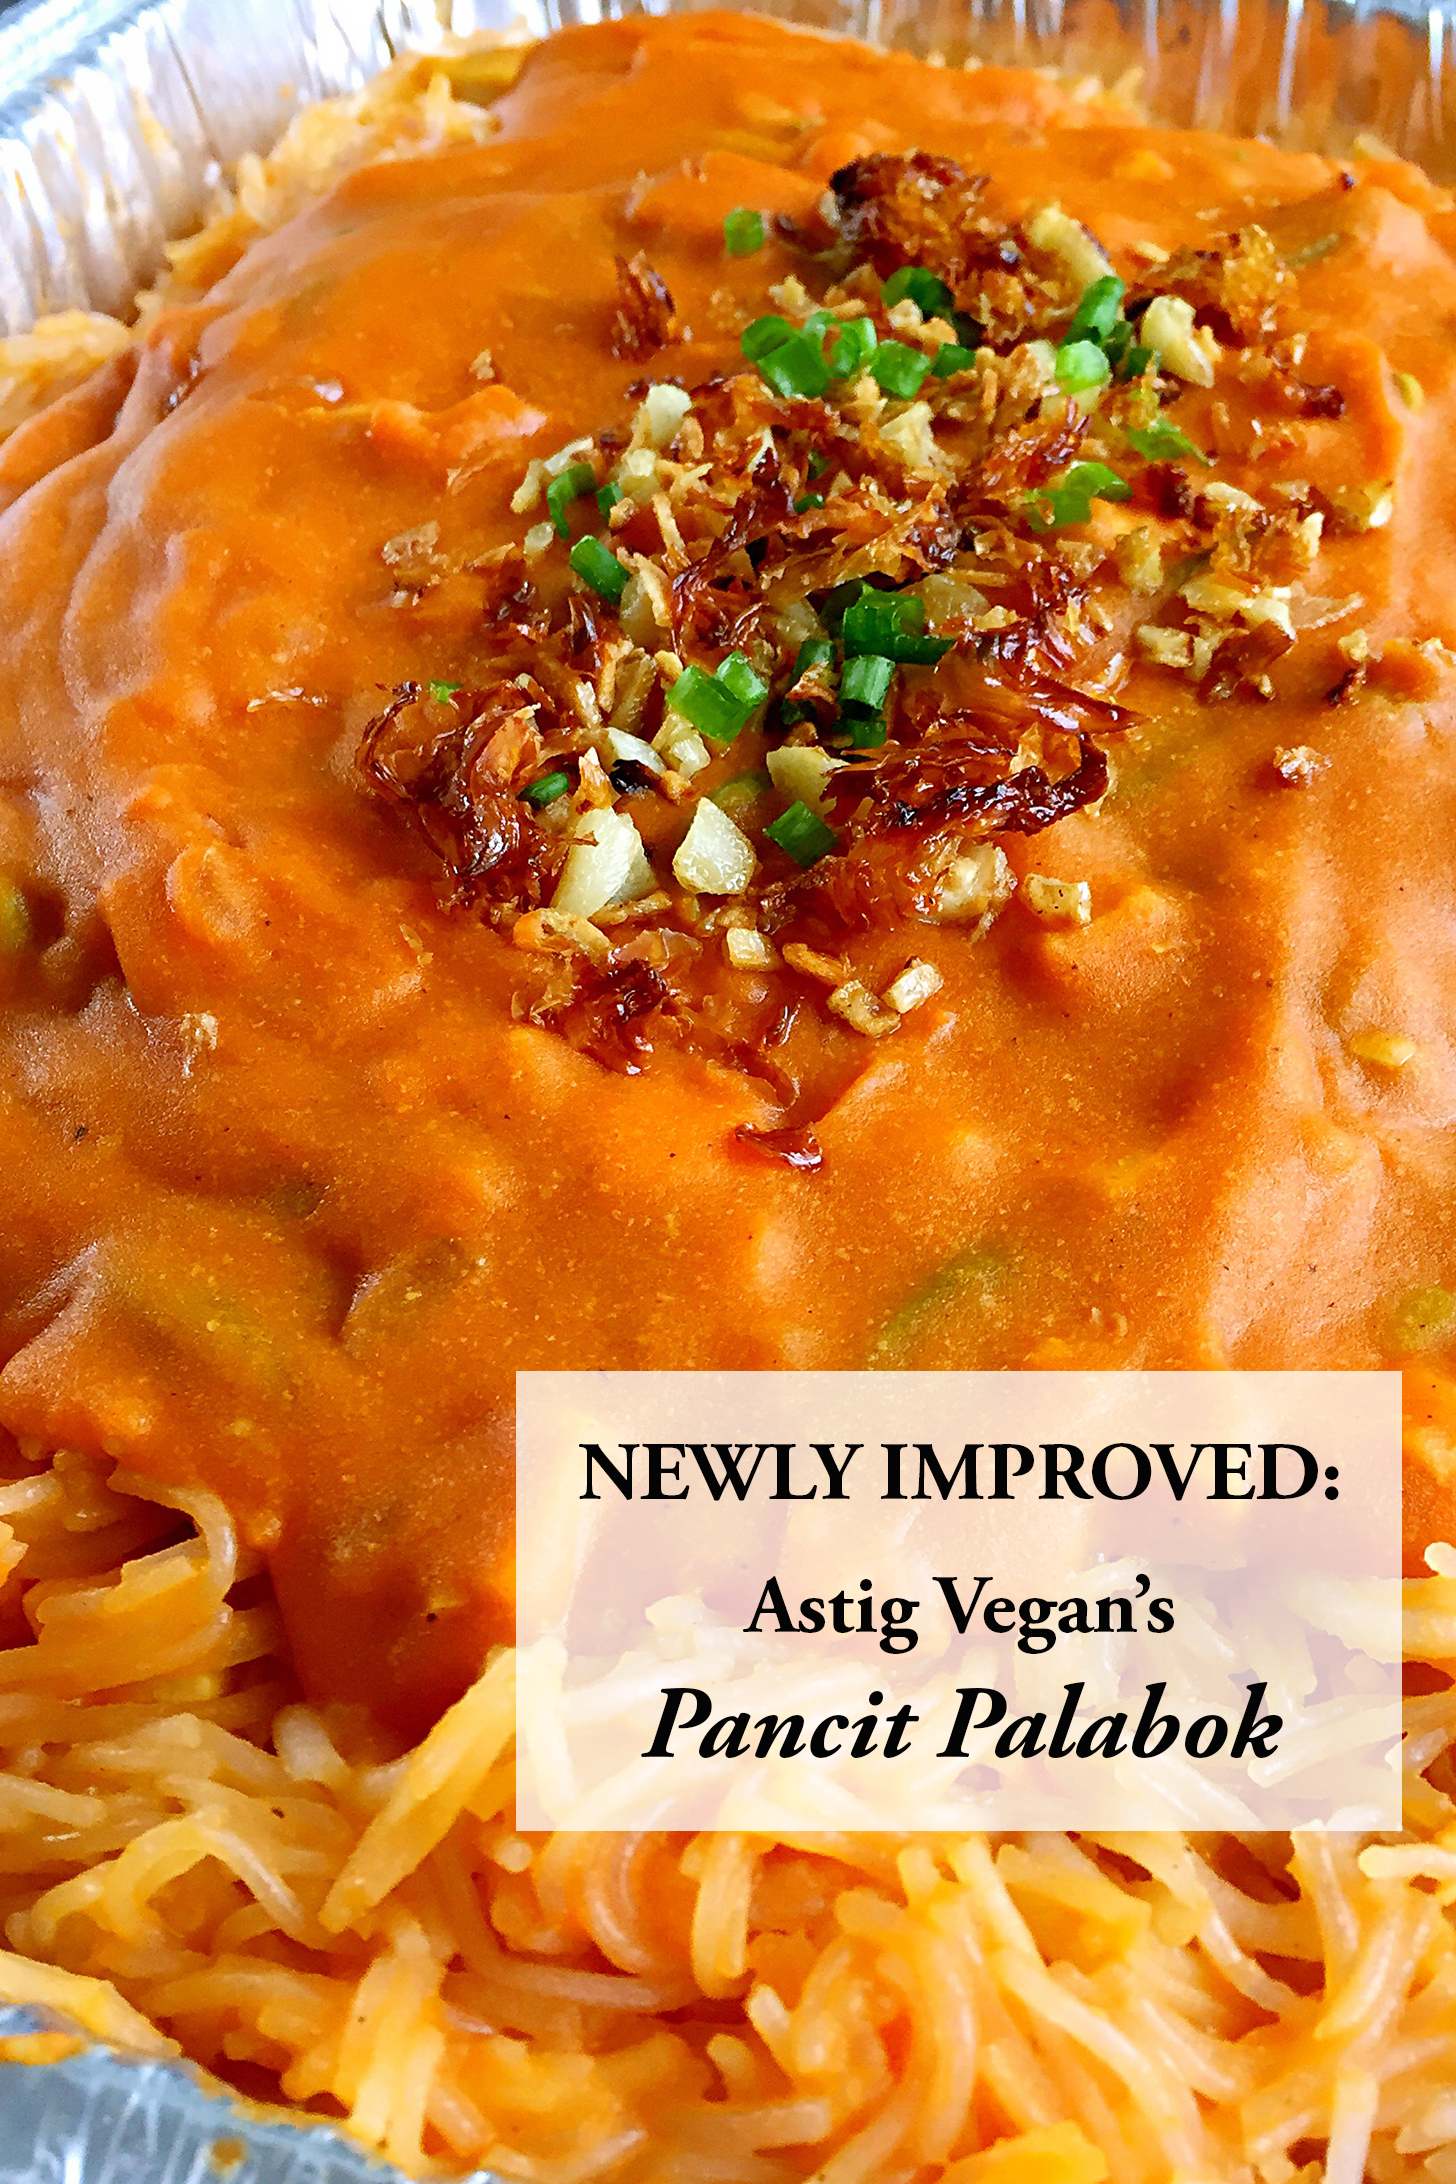 How To Make Vegan Pancit Palabok